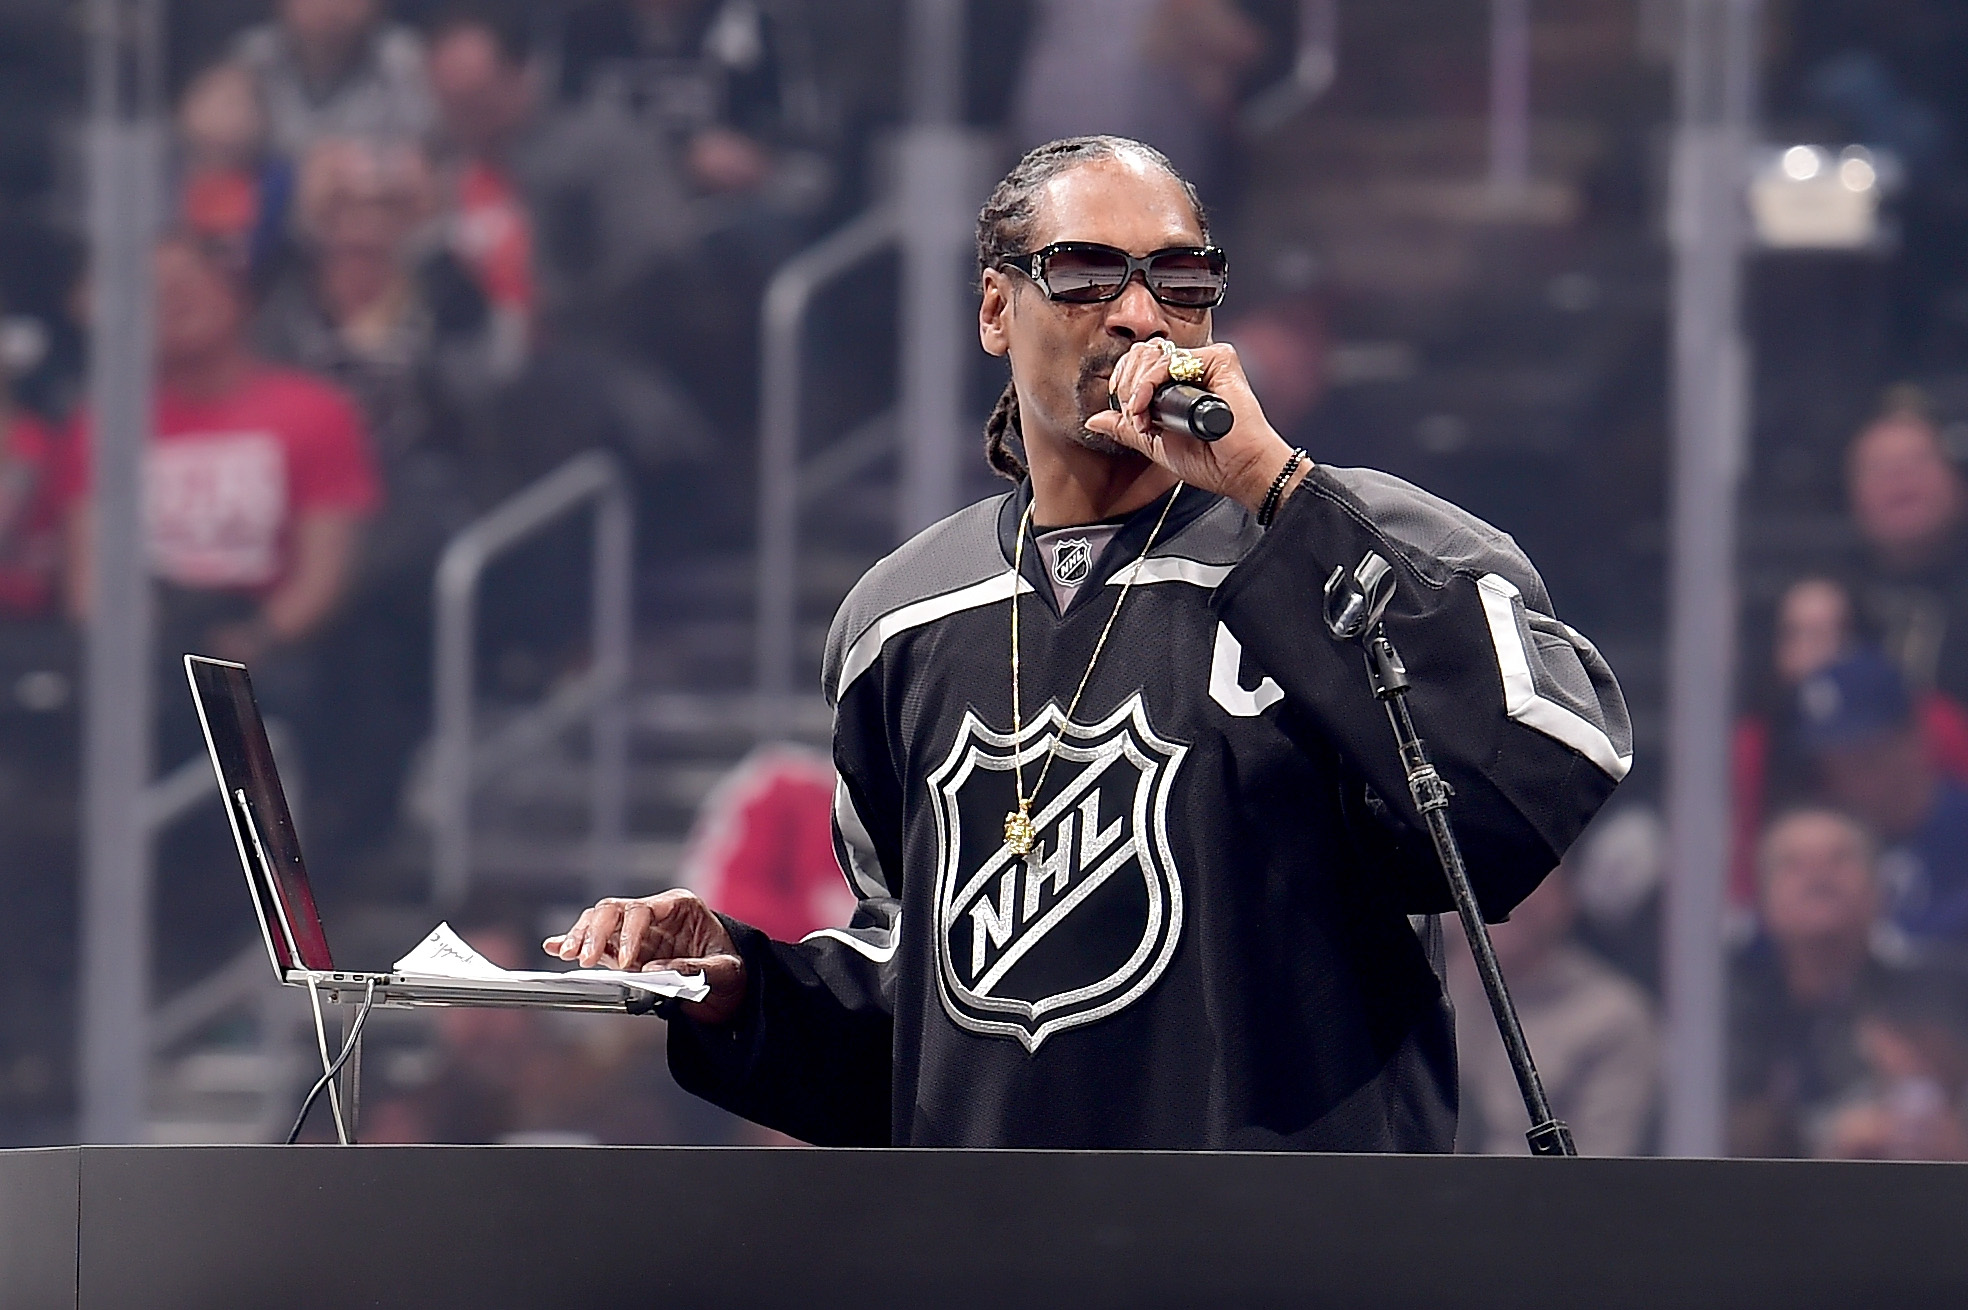 Snoop Dogg shows his hosting skills at the NHL All-Star Skills Competition on January 28, 2017 in Los Angeles, California.  (Photo by Harry How/Getty Images)